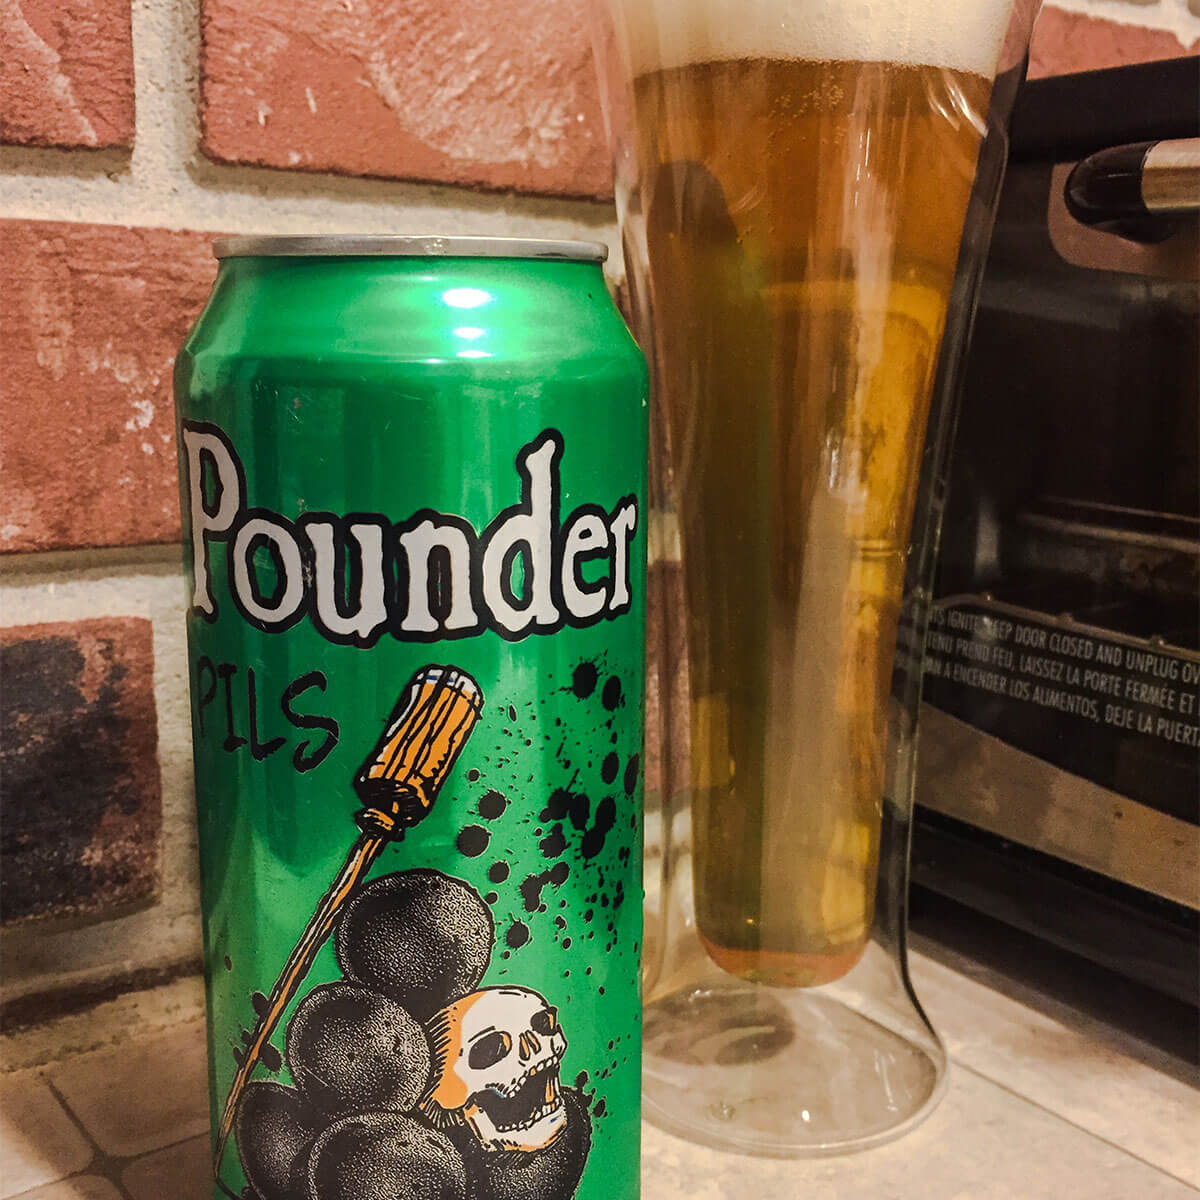 Pounder Pils is a German-style Pilsner by Heavy Seas Beer whose palate is powered by noble hops and balanced with lightly sweet malt.